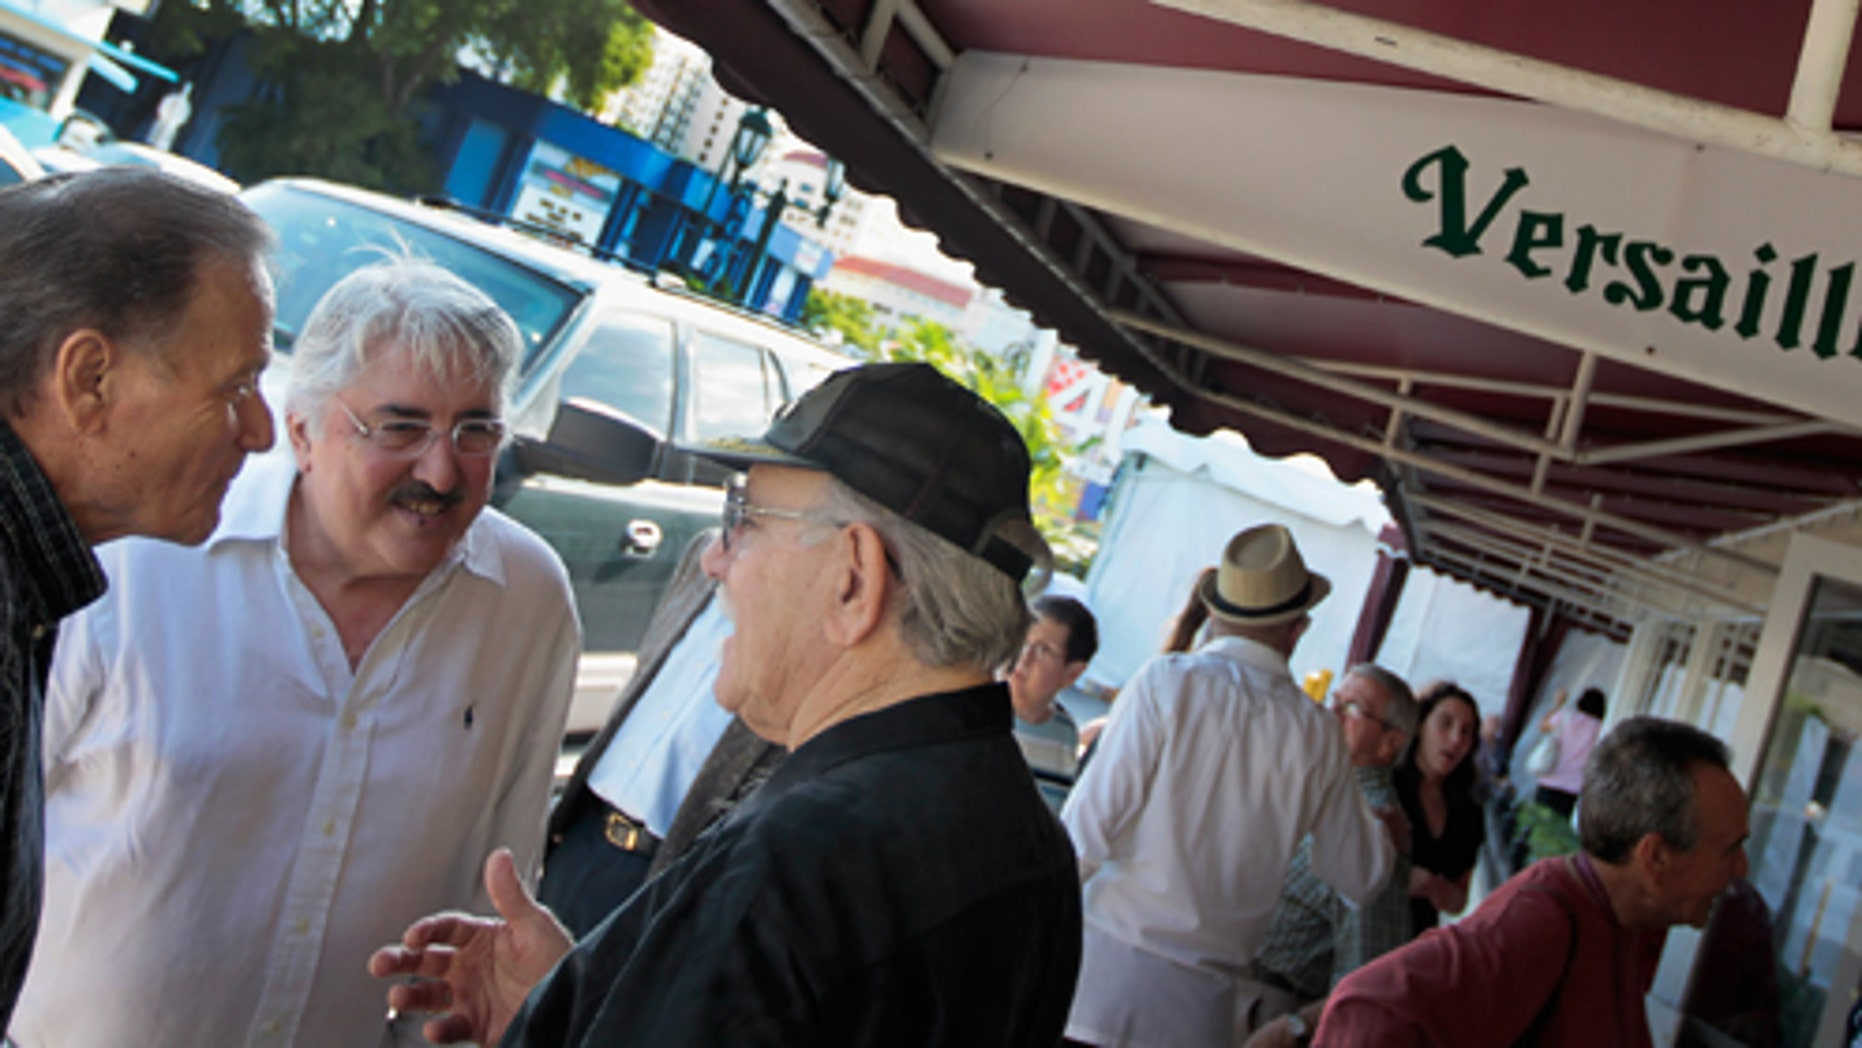 MIAMI, FL - JULY 12:  People gather in front of Versailles restaurant during the Cuban restaurants 40th anniversary party on July 12, 2011 in Miami, Florida. The famous restaurant was founded by a Cuban exile and is where people hang out to discuss politics over a Cuban coffee and to see which U.S. president, governors, legislators, mayors and commissioners pass through to court the Cuban vote.  (Photo by Joe Raedle/Getty Images)